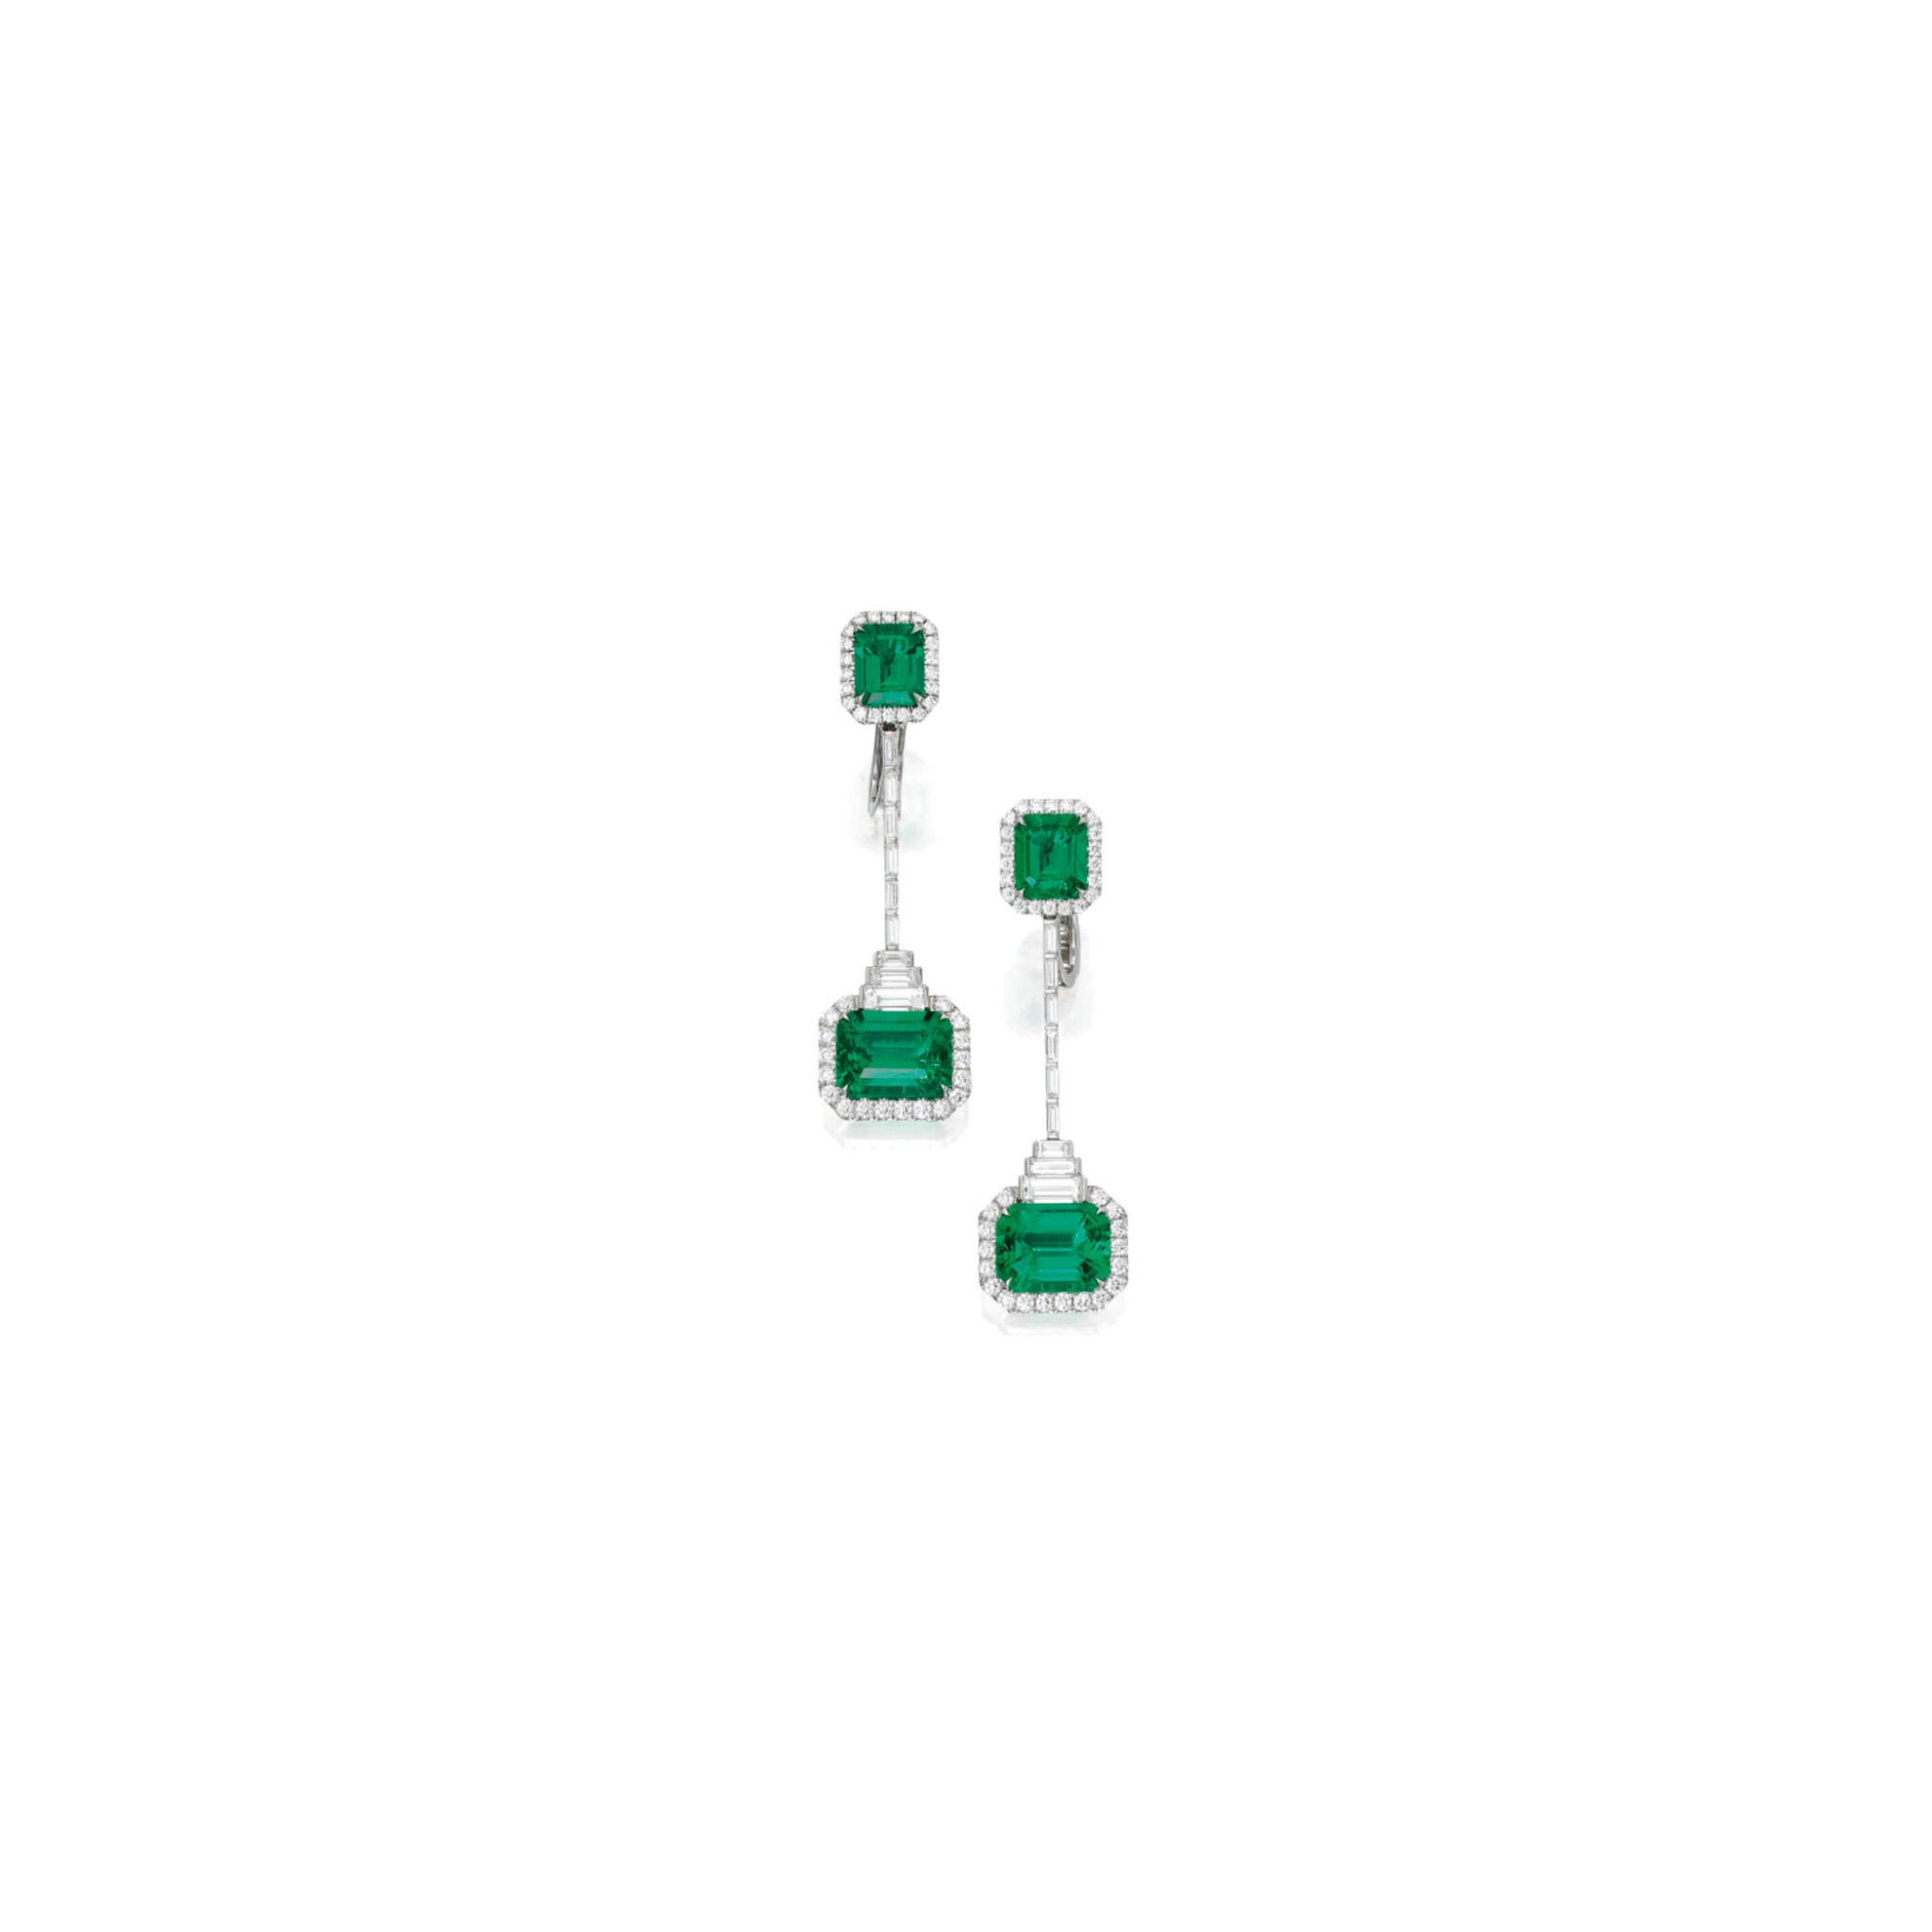 View full screen - View 1 of Lot 432. PAIR OF EMERALD AND DIAMOND PENDANT-EARCLIPS   祖母綠配鑽石吊耳環一對.